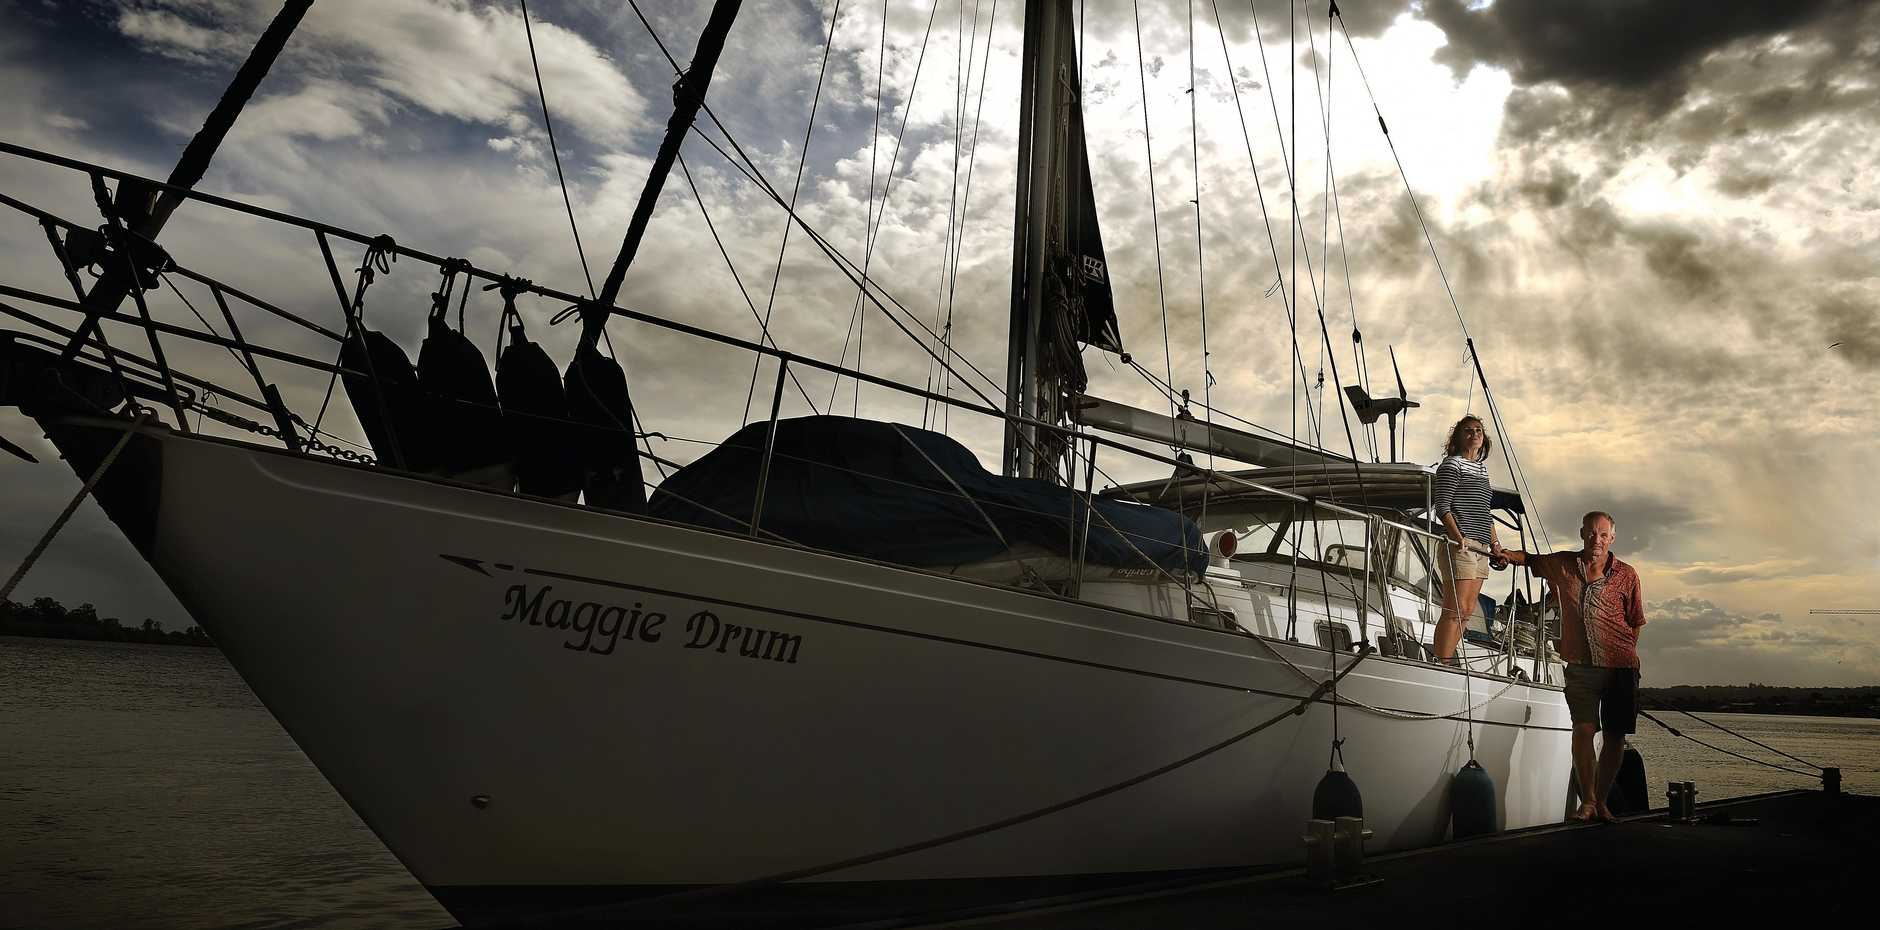 WORLD WAS THEIR OYSTER: Duncan and Caroline Woodhead have returned to Ballina after sailing around the world for more than five years on the Maggie Drum.